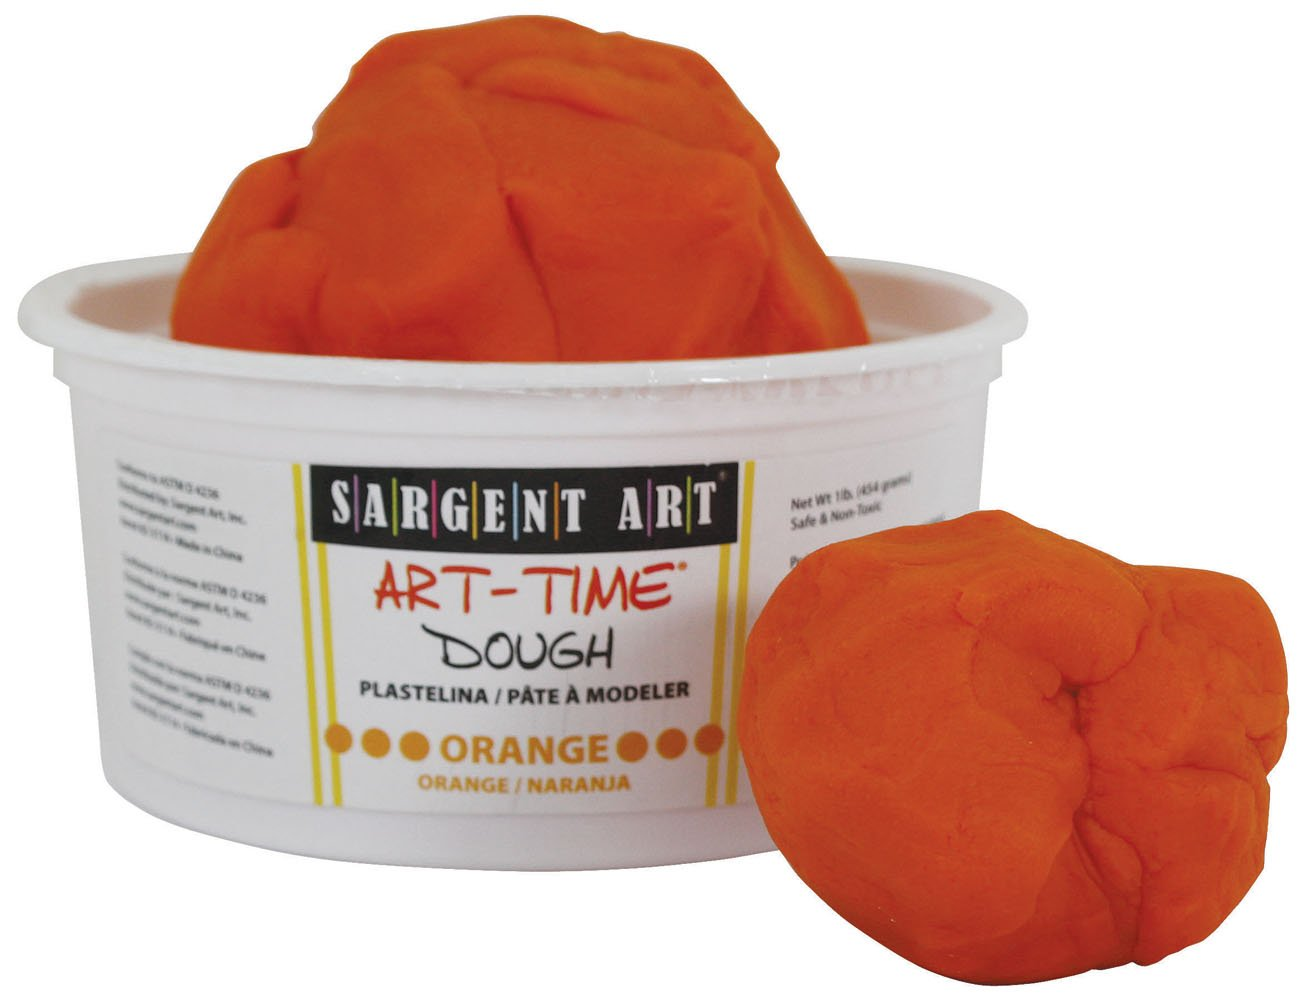 Sargent Art 85-3114 1-Pound Art-Time Dough, Orange